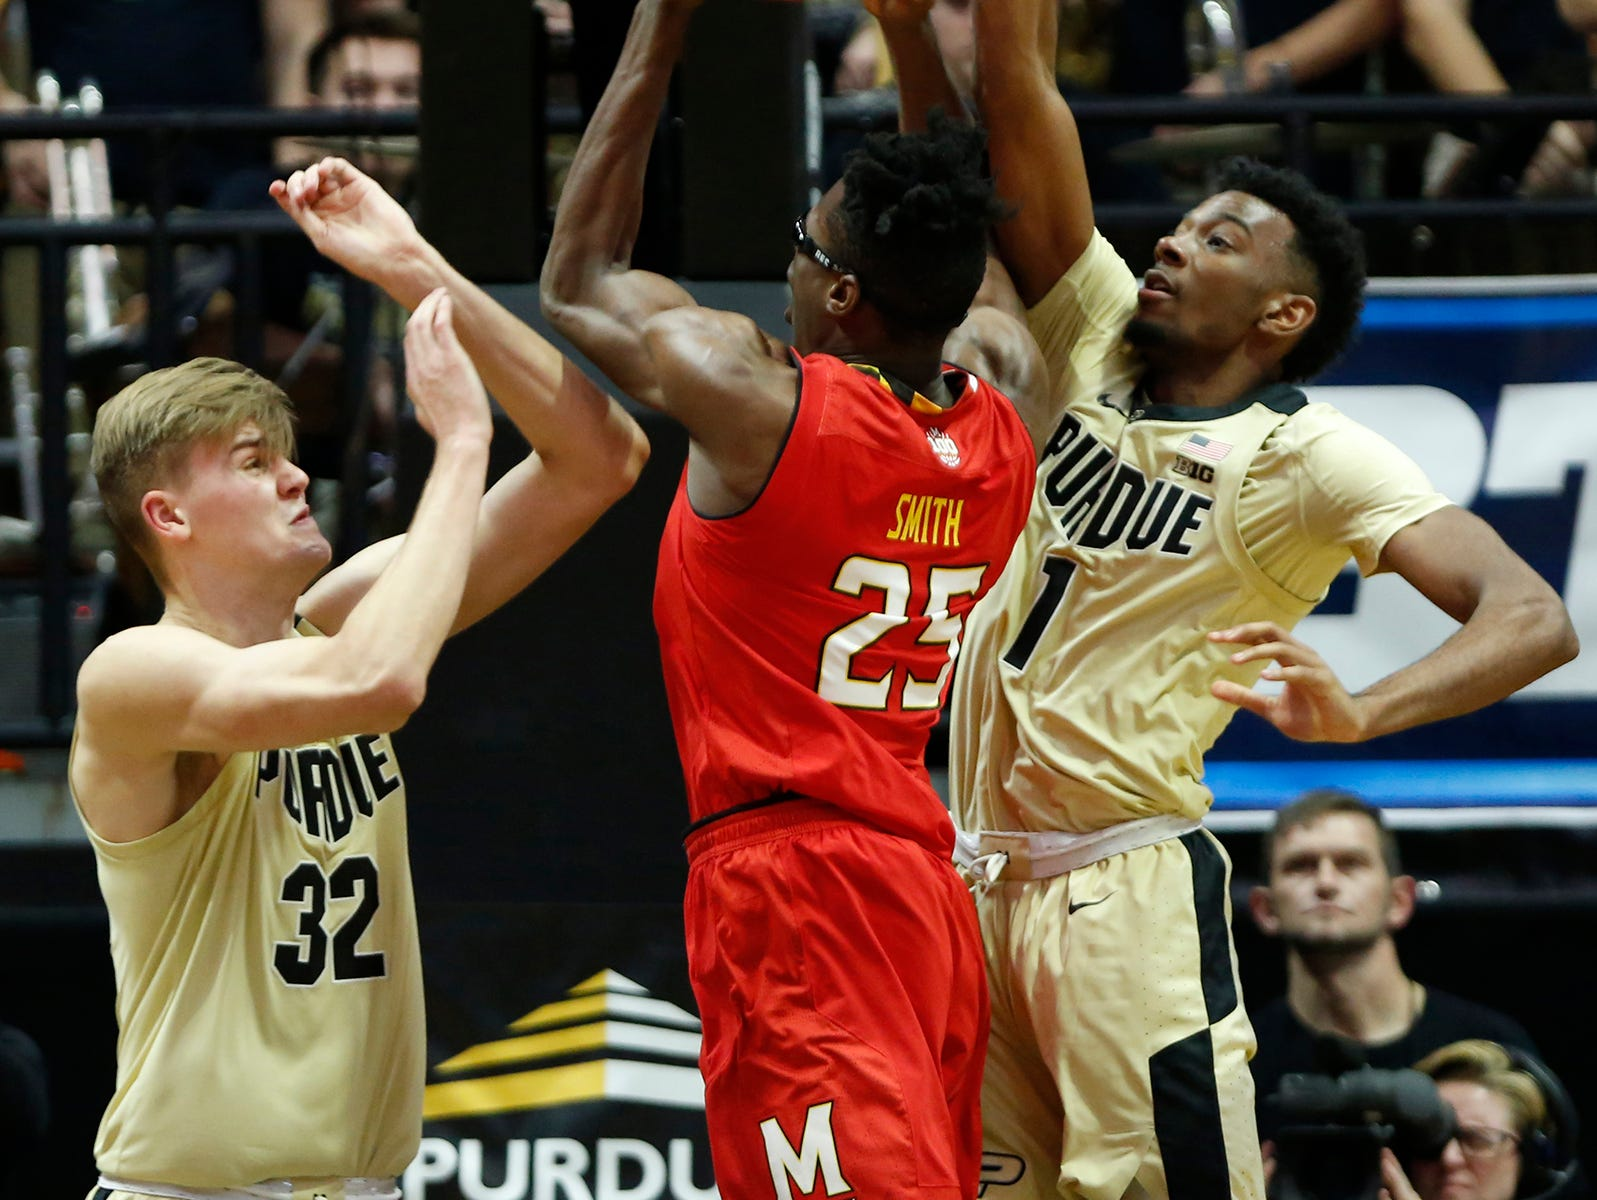 Matt Haarms and Aaron Wheeler of Purdue defend a shot at the basket by Jalen Smith of Maryland Thursday, December 6, 2018, at Mackey Arena. Purdue defeated Maryland 62-60.